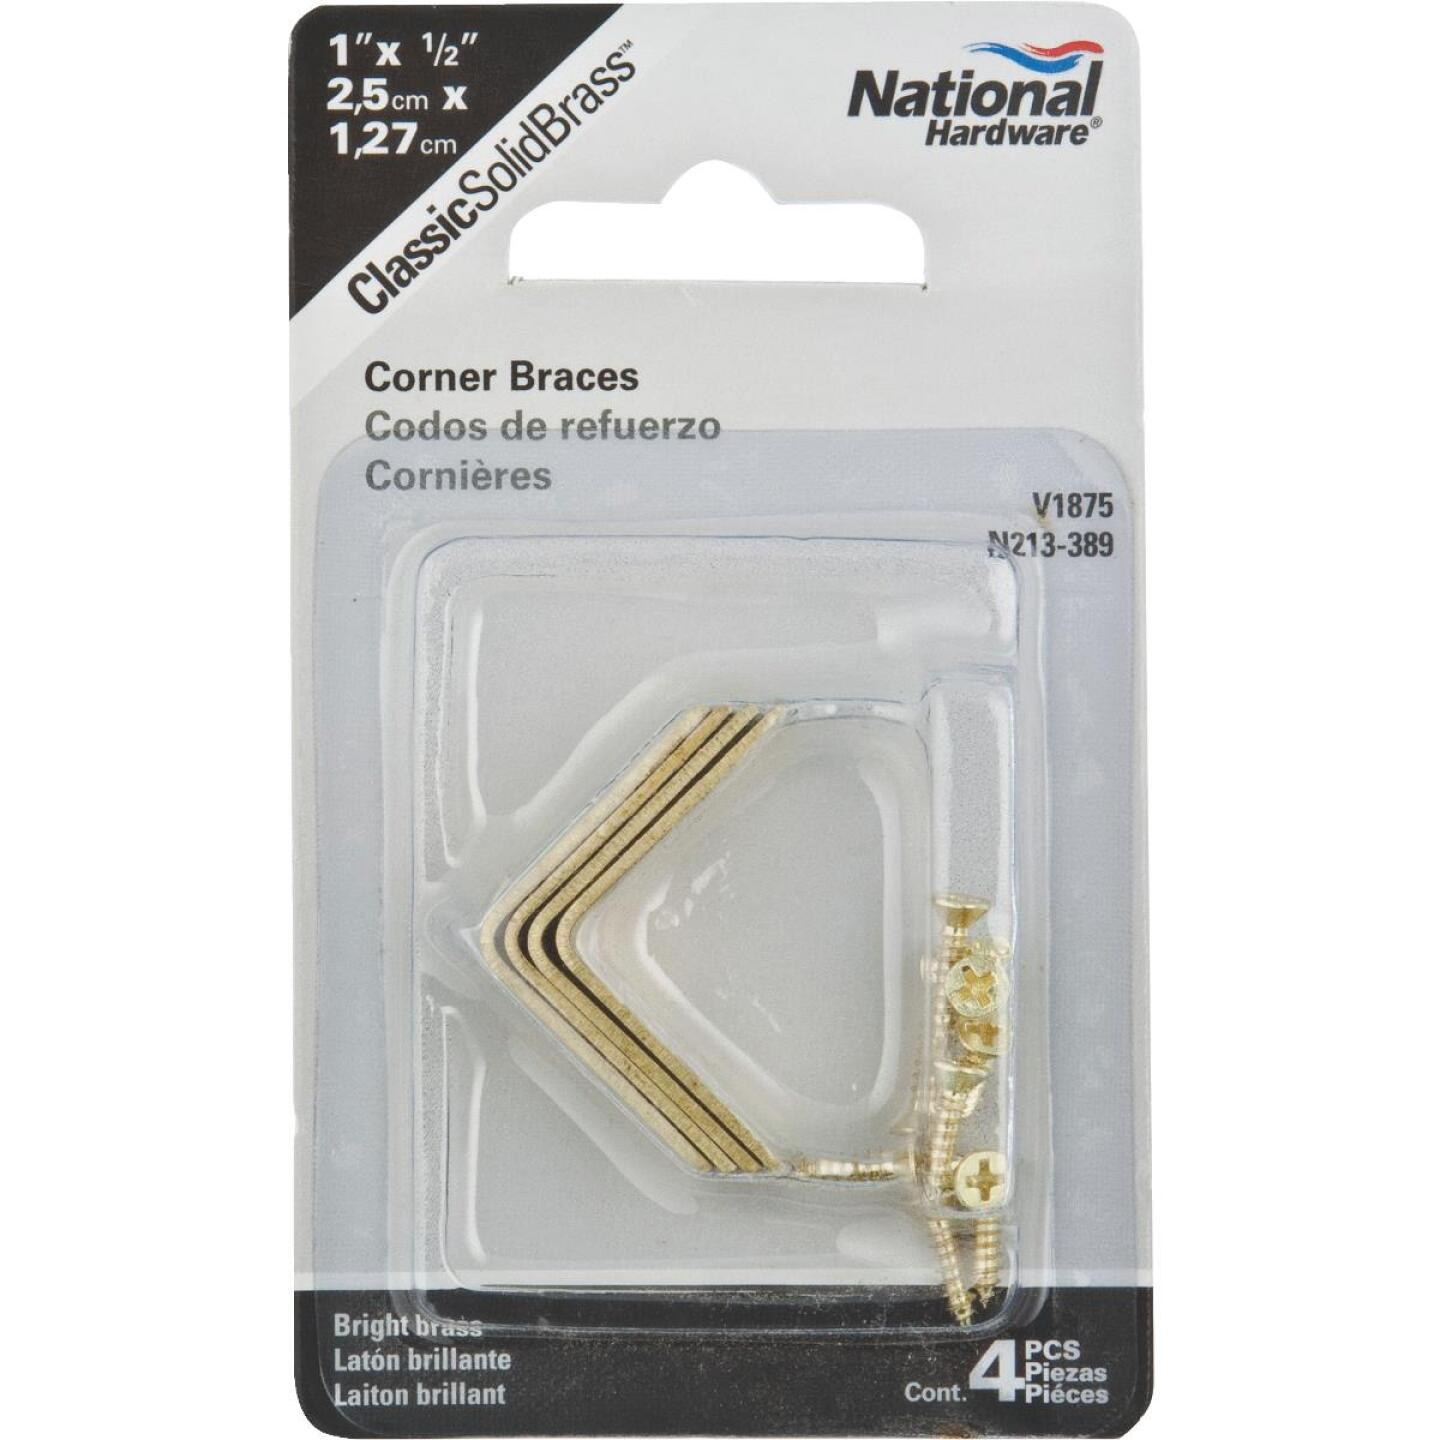 National Catalog V1875 1 In. x 1/2 In. Solid Brass Corner Brace Image 2